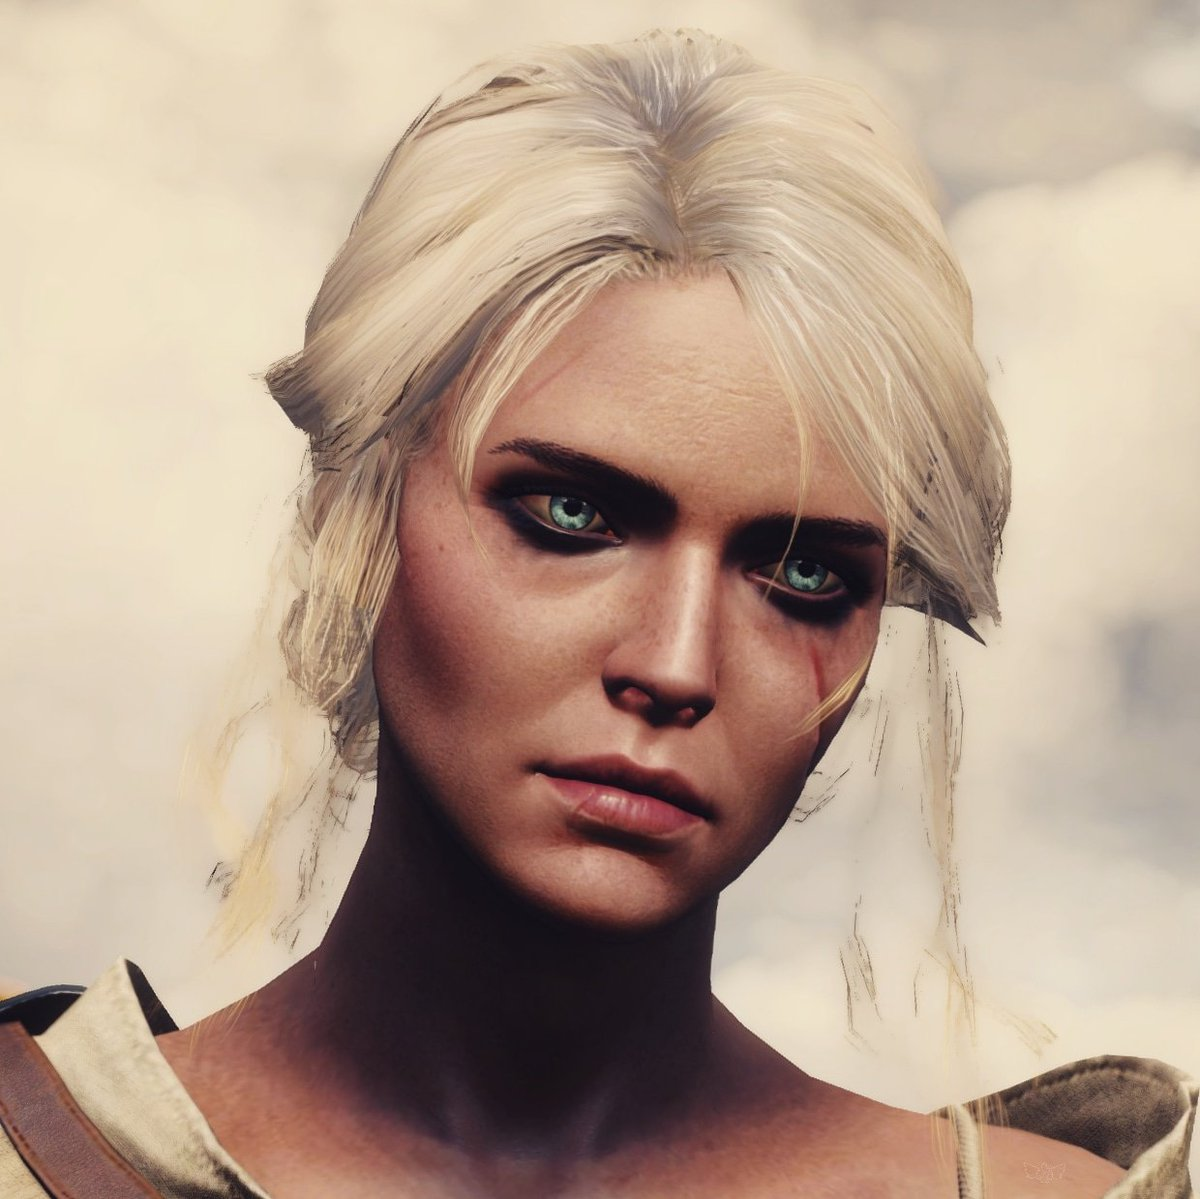 What do you think about the casting choice for Ciri in the Netflix series? ... ⠀⠀⠀⠀⠀⠀⠀⠀⠀  Game: #thewitcher3 Character: #ciri Developer: @cdpred Publisher: @cdpred  ⠀⠀⠀⠀⠀⠀⠀⠀⠀ #witcher #witcher3 #geralt #thewitcher3wildhunt #screenshot #gaming #gamingart pic.twitter.com/JOXwaU2XPd